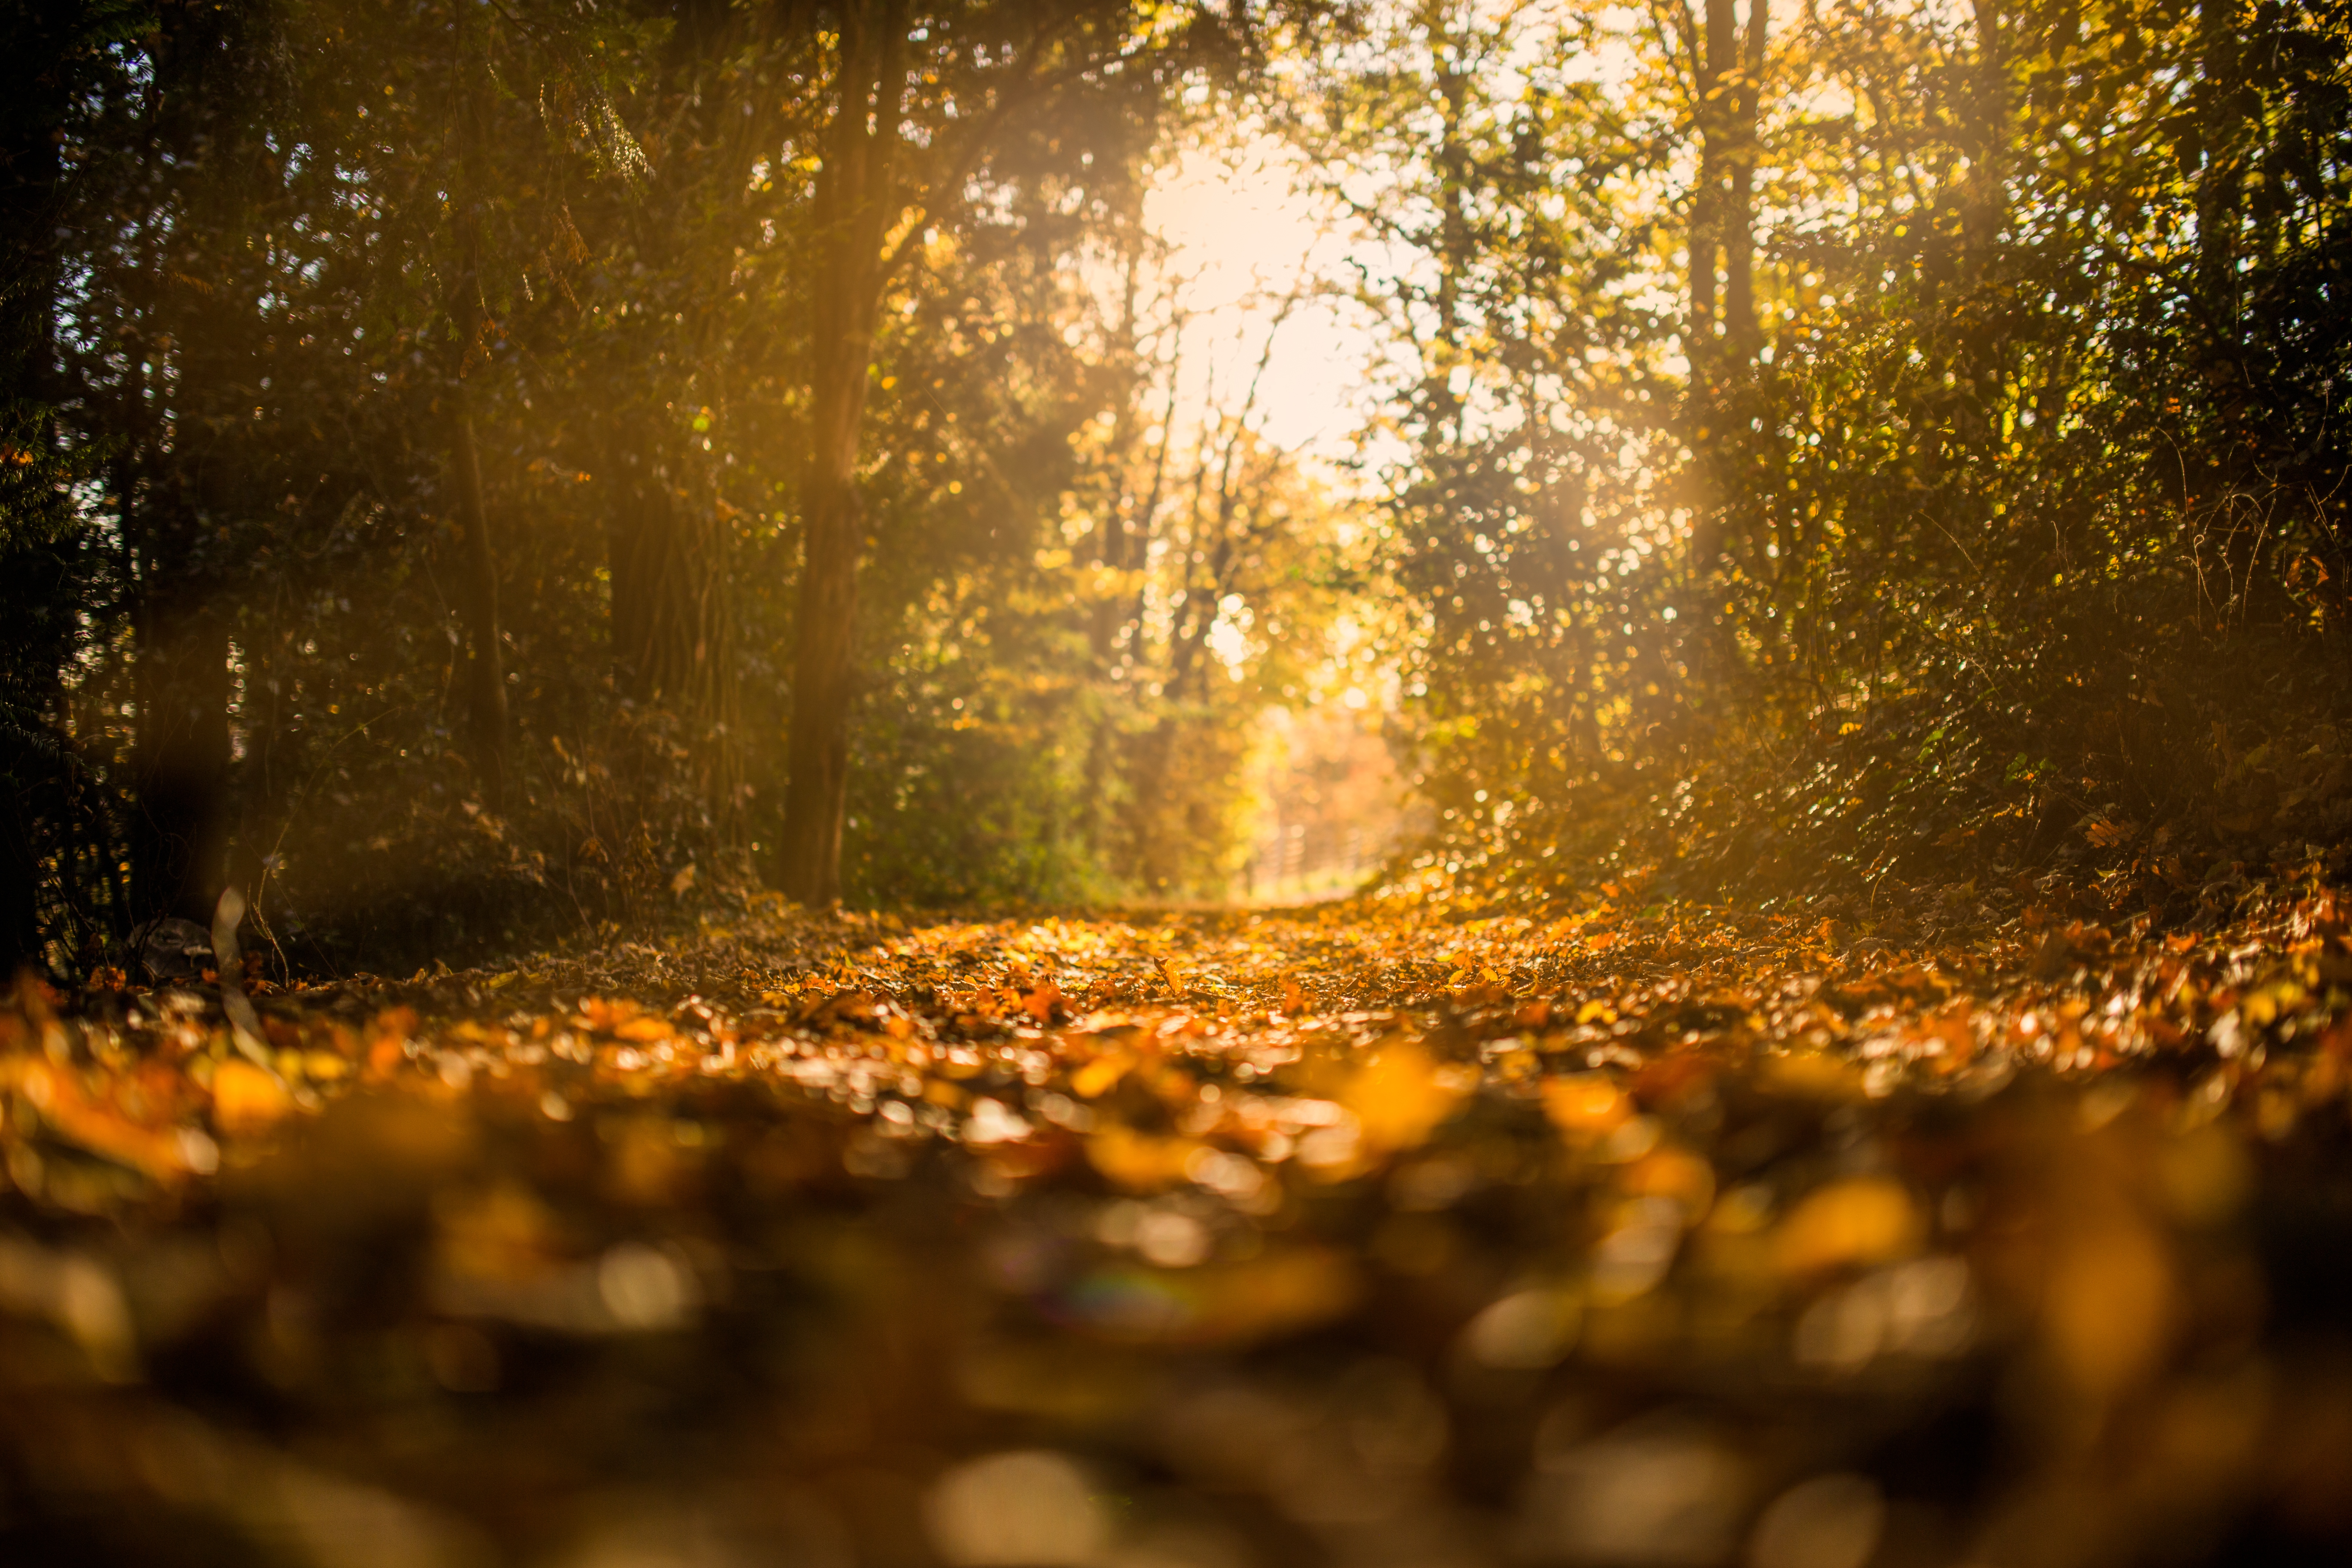 negative-space-forest-in-autumn